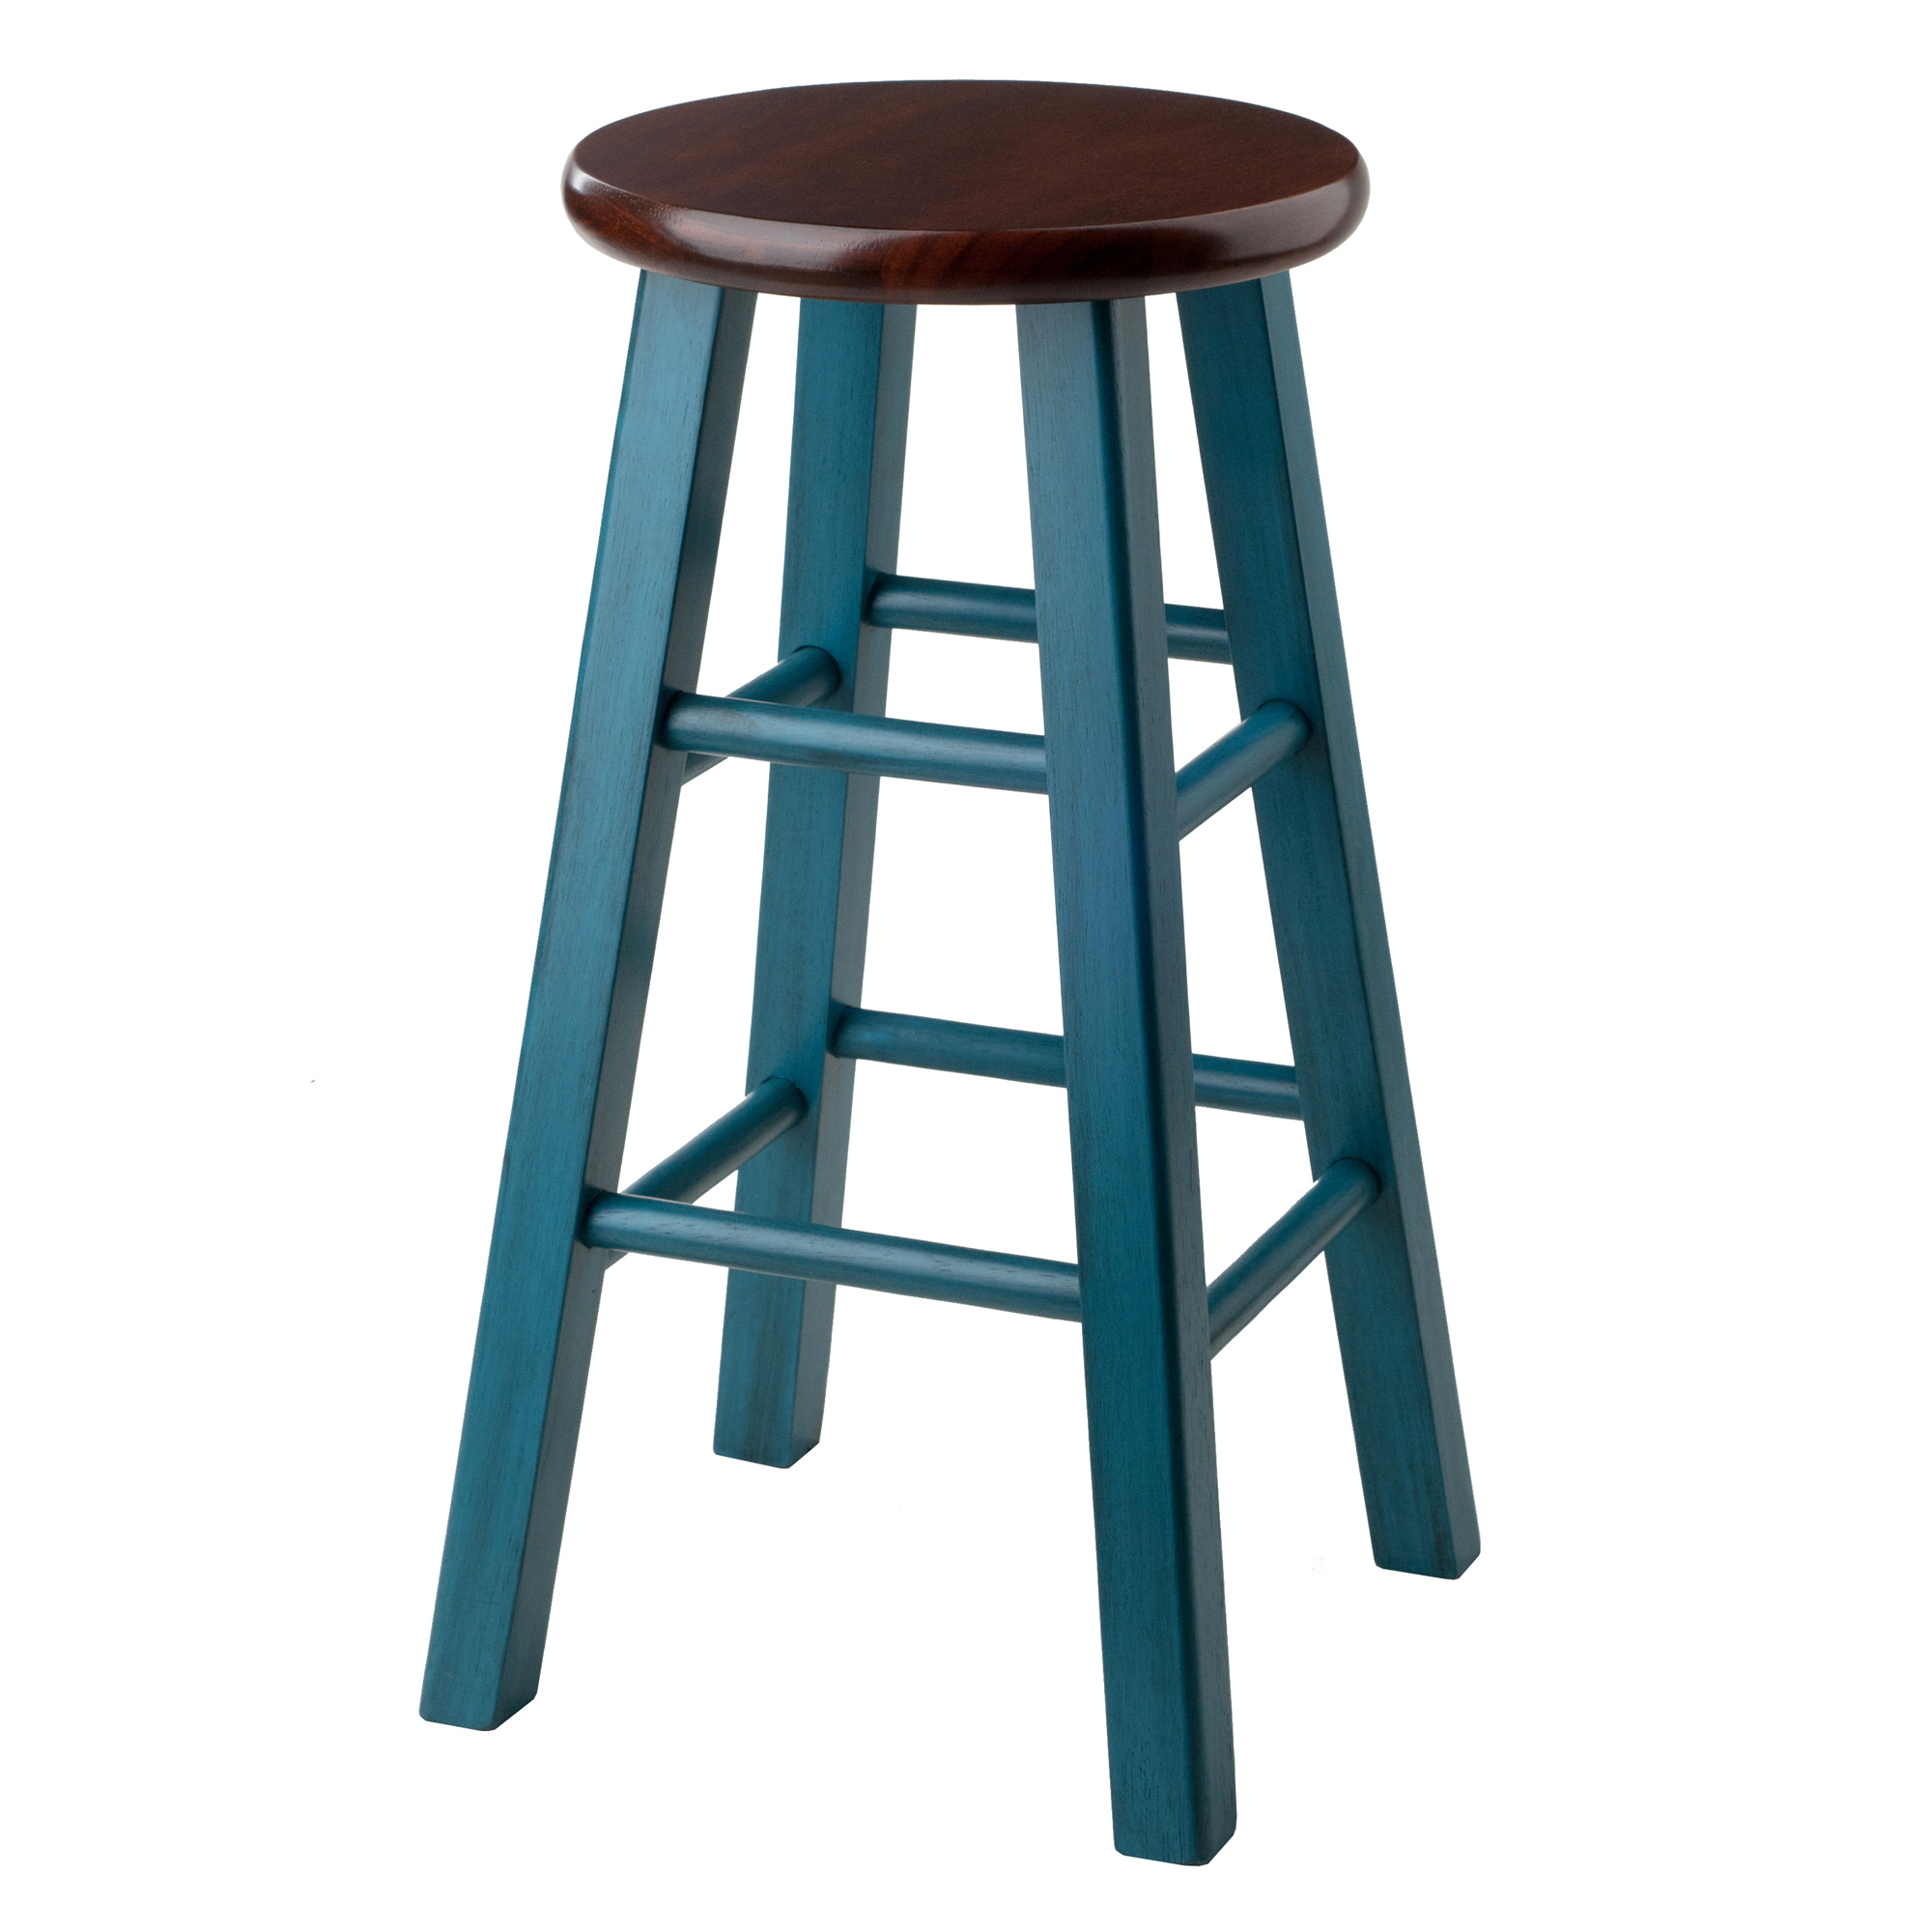 Winsome Wood Ivy 24 Counter Stool Rustic Teal W Walnut Seat